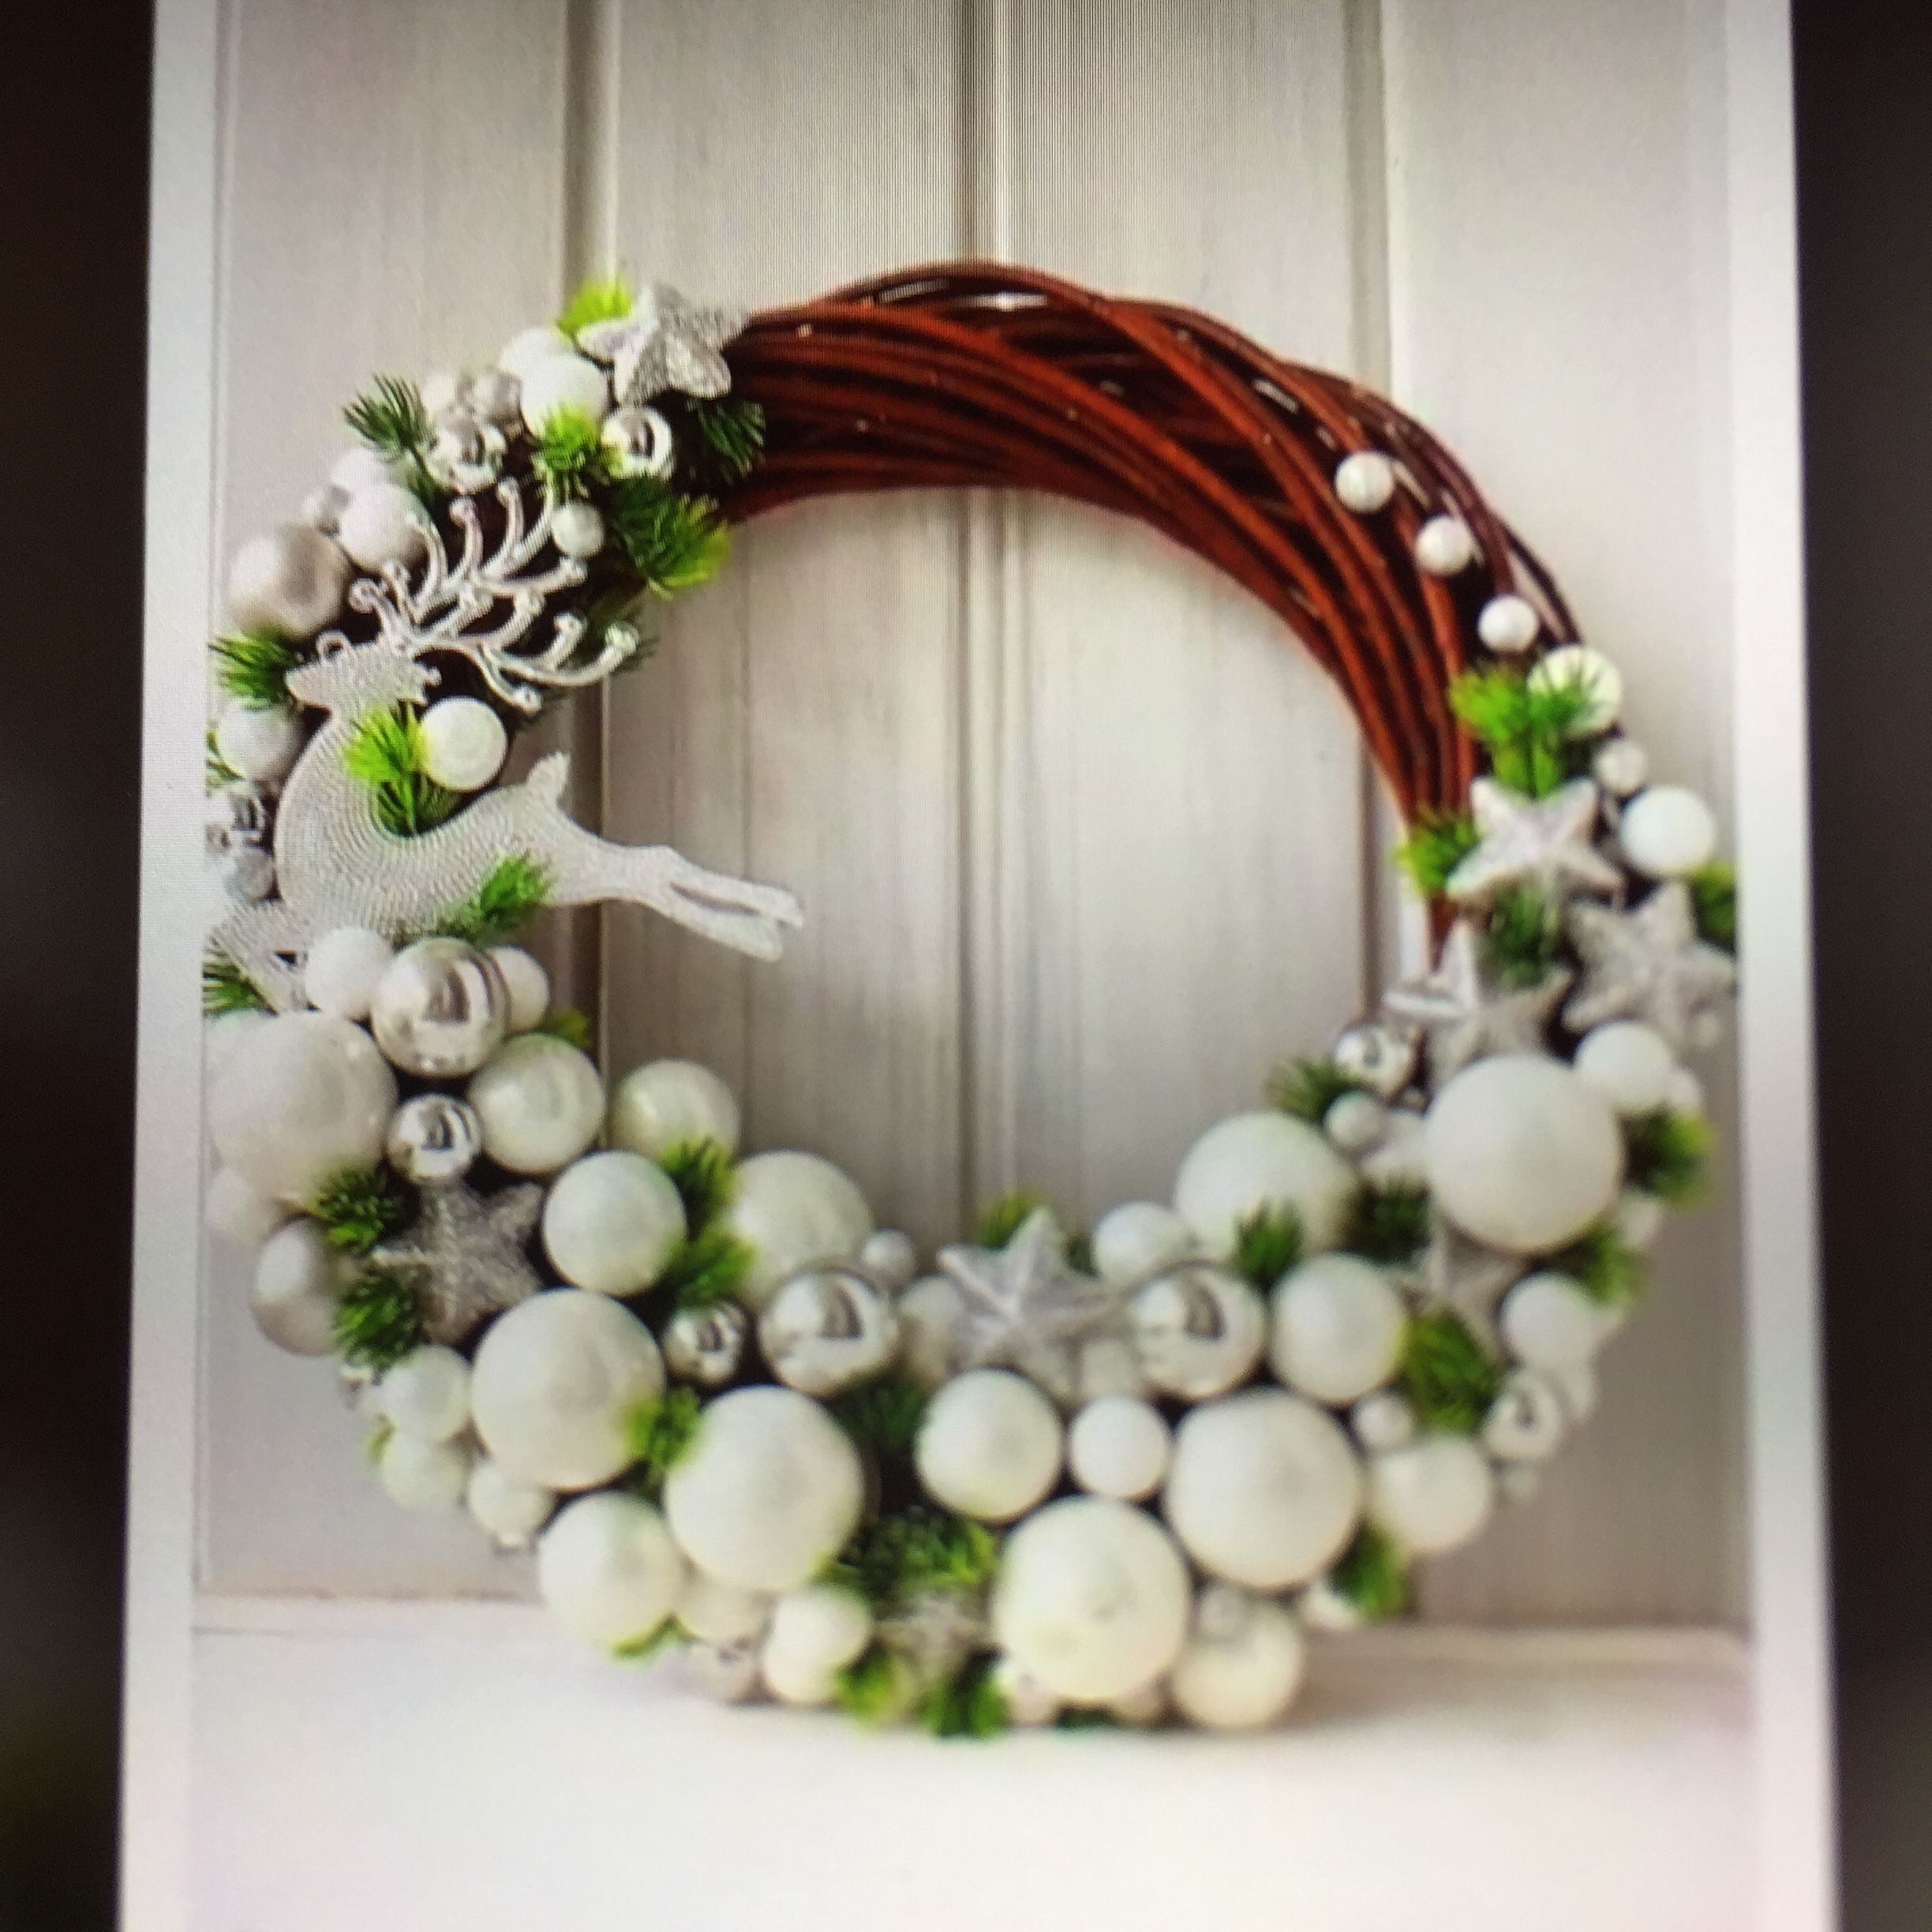 Pin by GiuGen on Crafts Christmas Wreaths Ghirlande